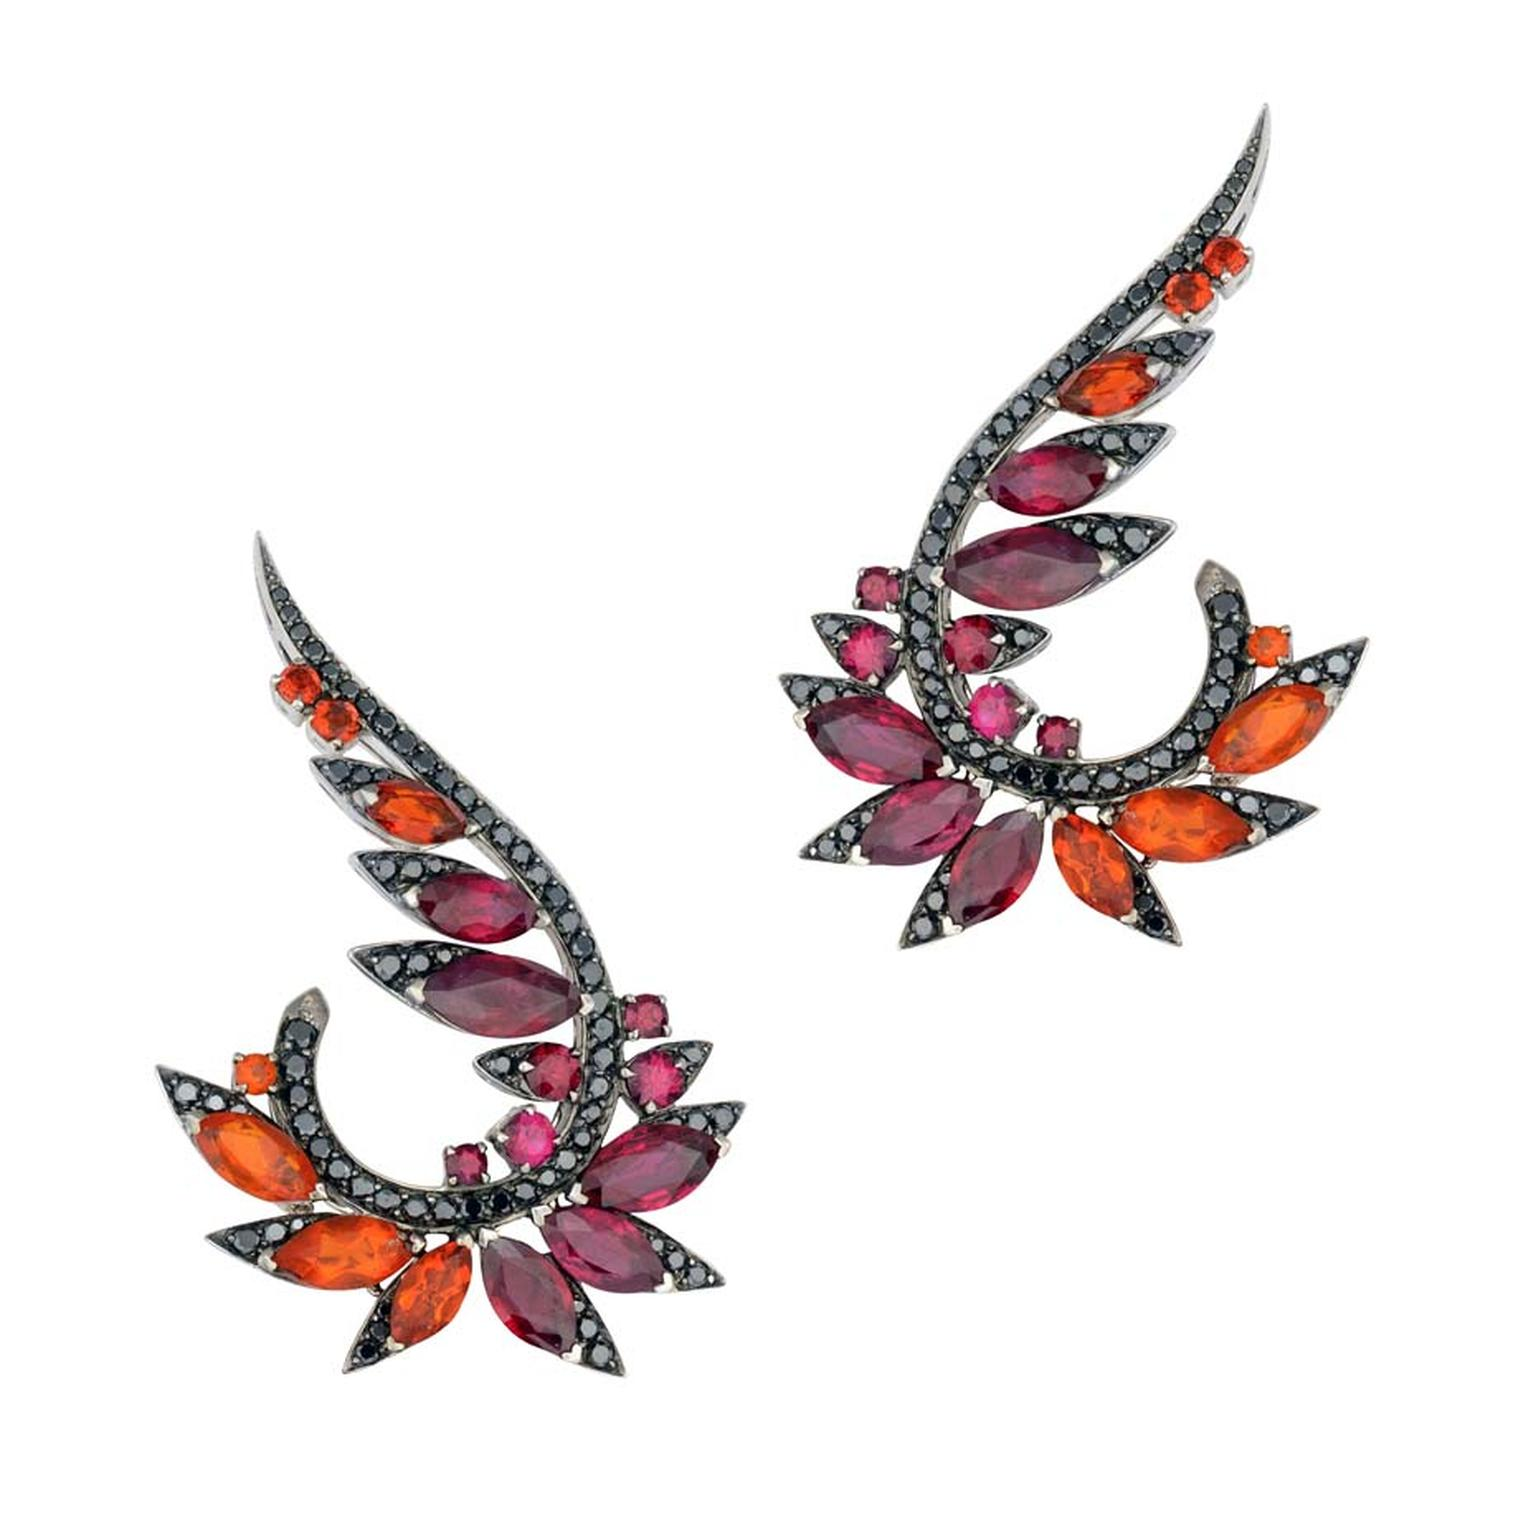 Stephen Webster's Magnipheasant plumage earrings in 18ct white gold, featuring marquise cut rubies, fire opals and black diamond pavé.